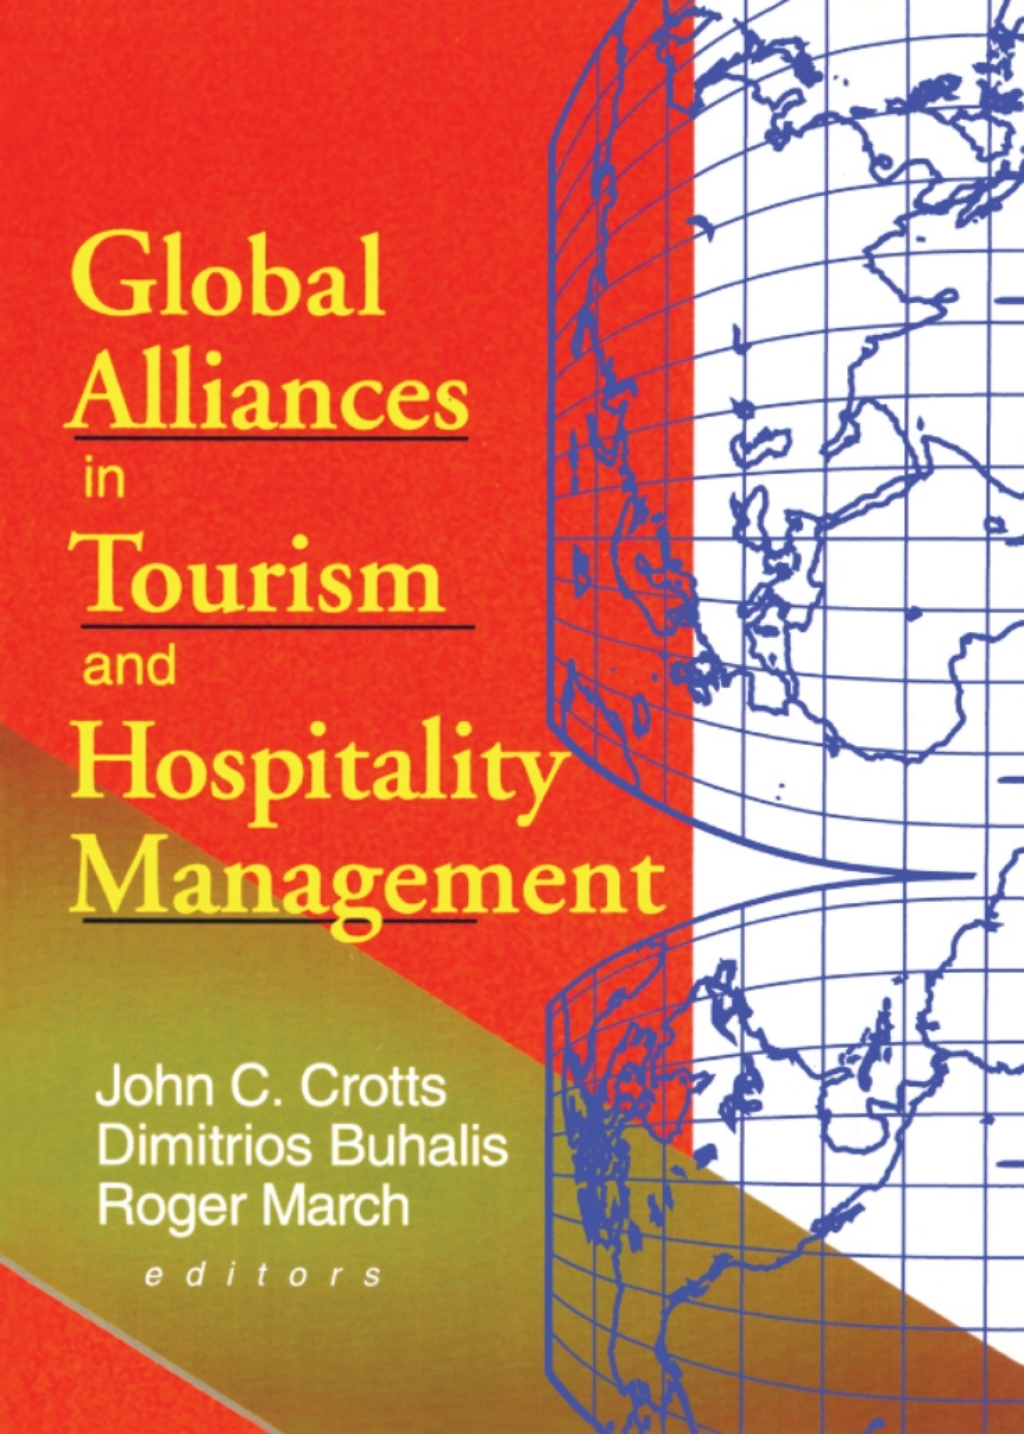 Global Alliances in Tourism and Hospitality Management (eBook Rental)